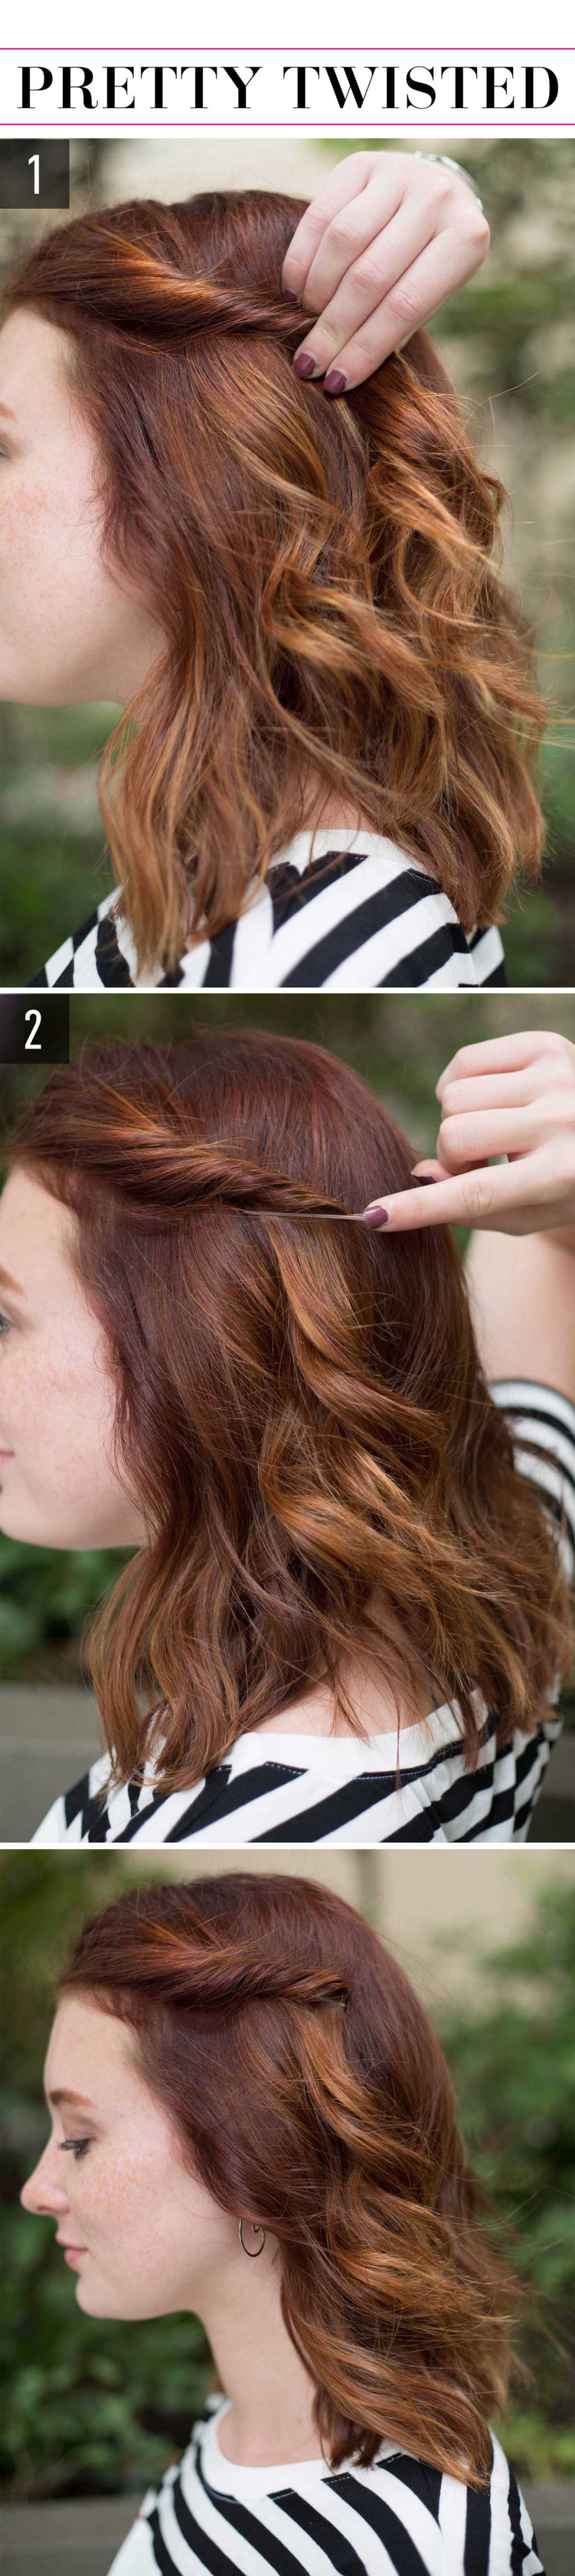 supereasy hairstyles for lazy girls who canut even coiffure